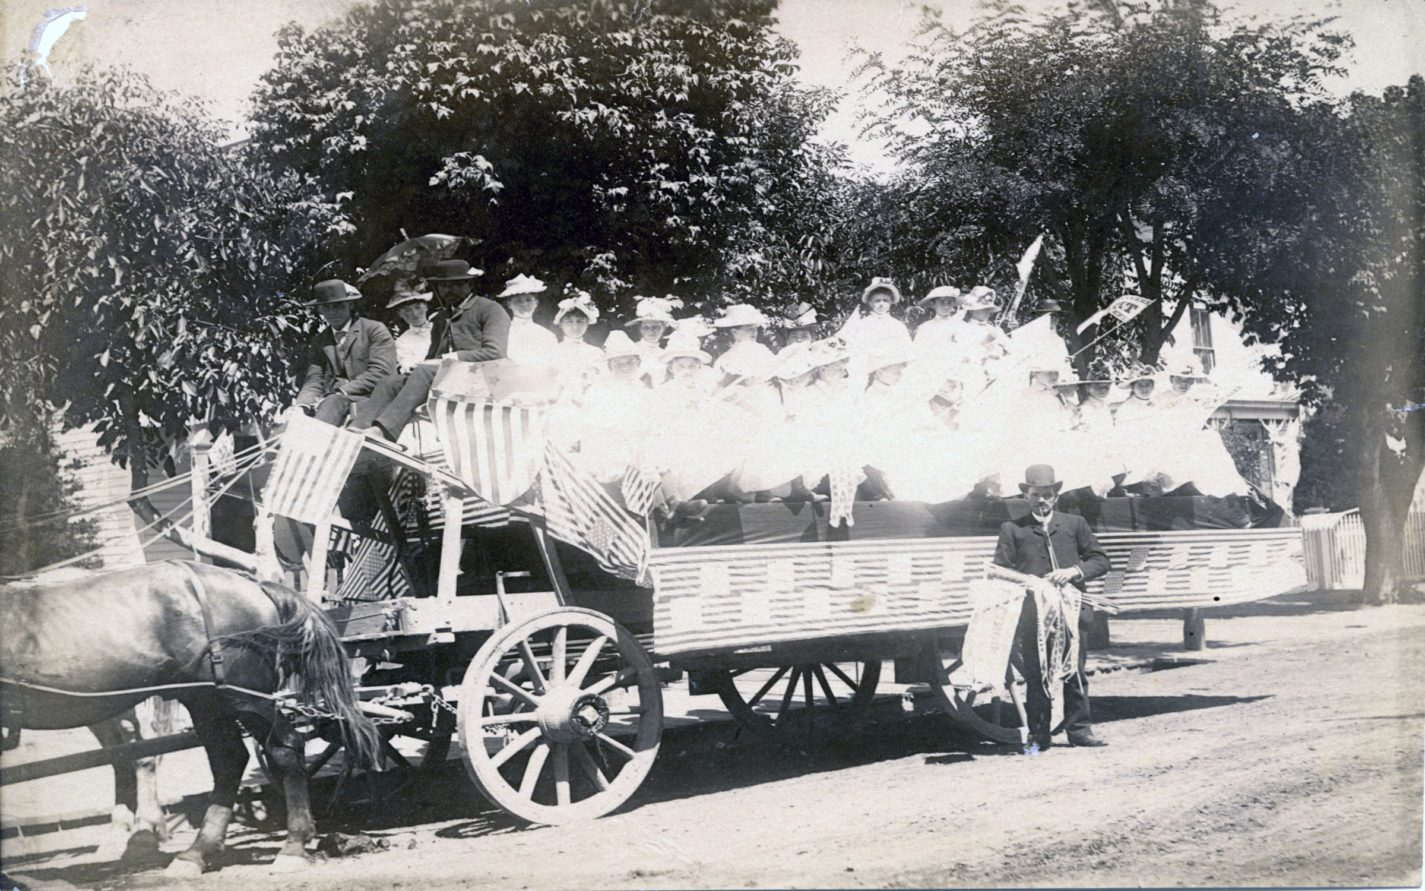 Float decorated with flags with a group of young girls dressed in white